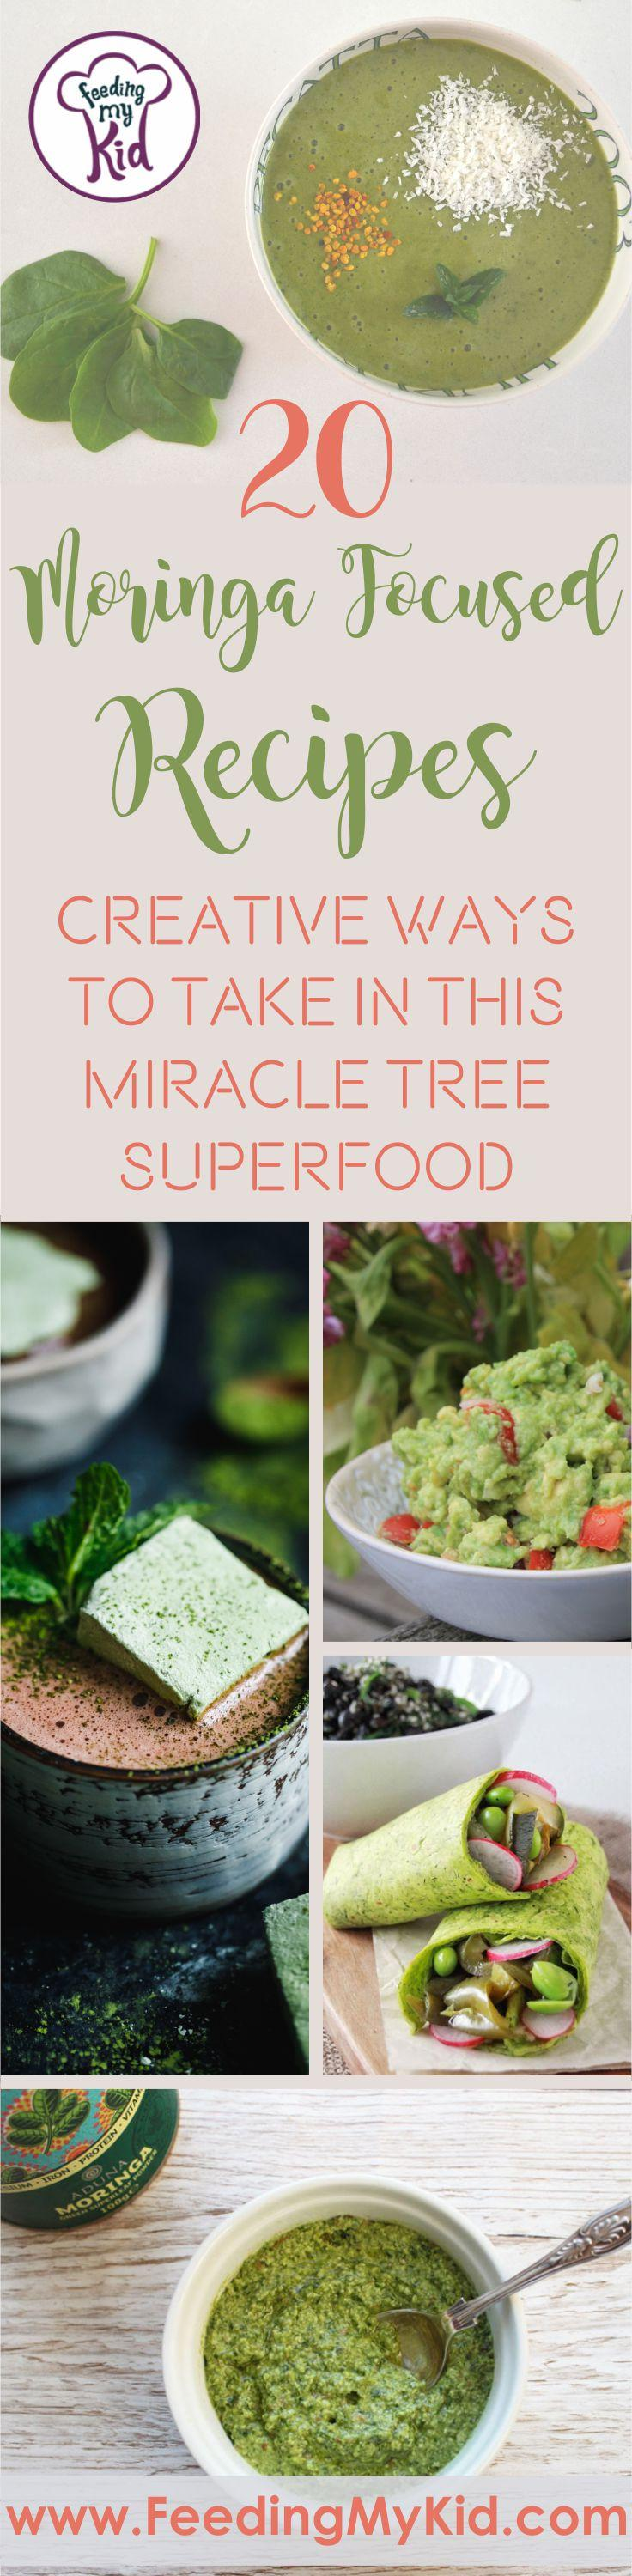 Moringa is a miracle tree superfood that is amazing for the body. Wanting to get more in your diet? These moringa recipes will do just that!